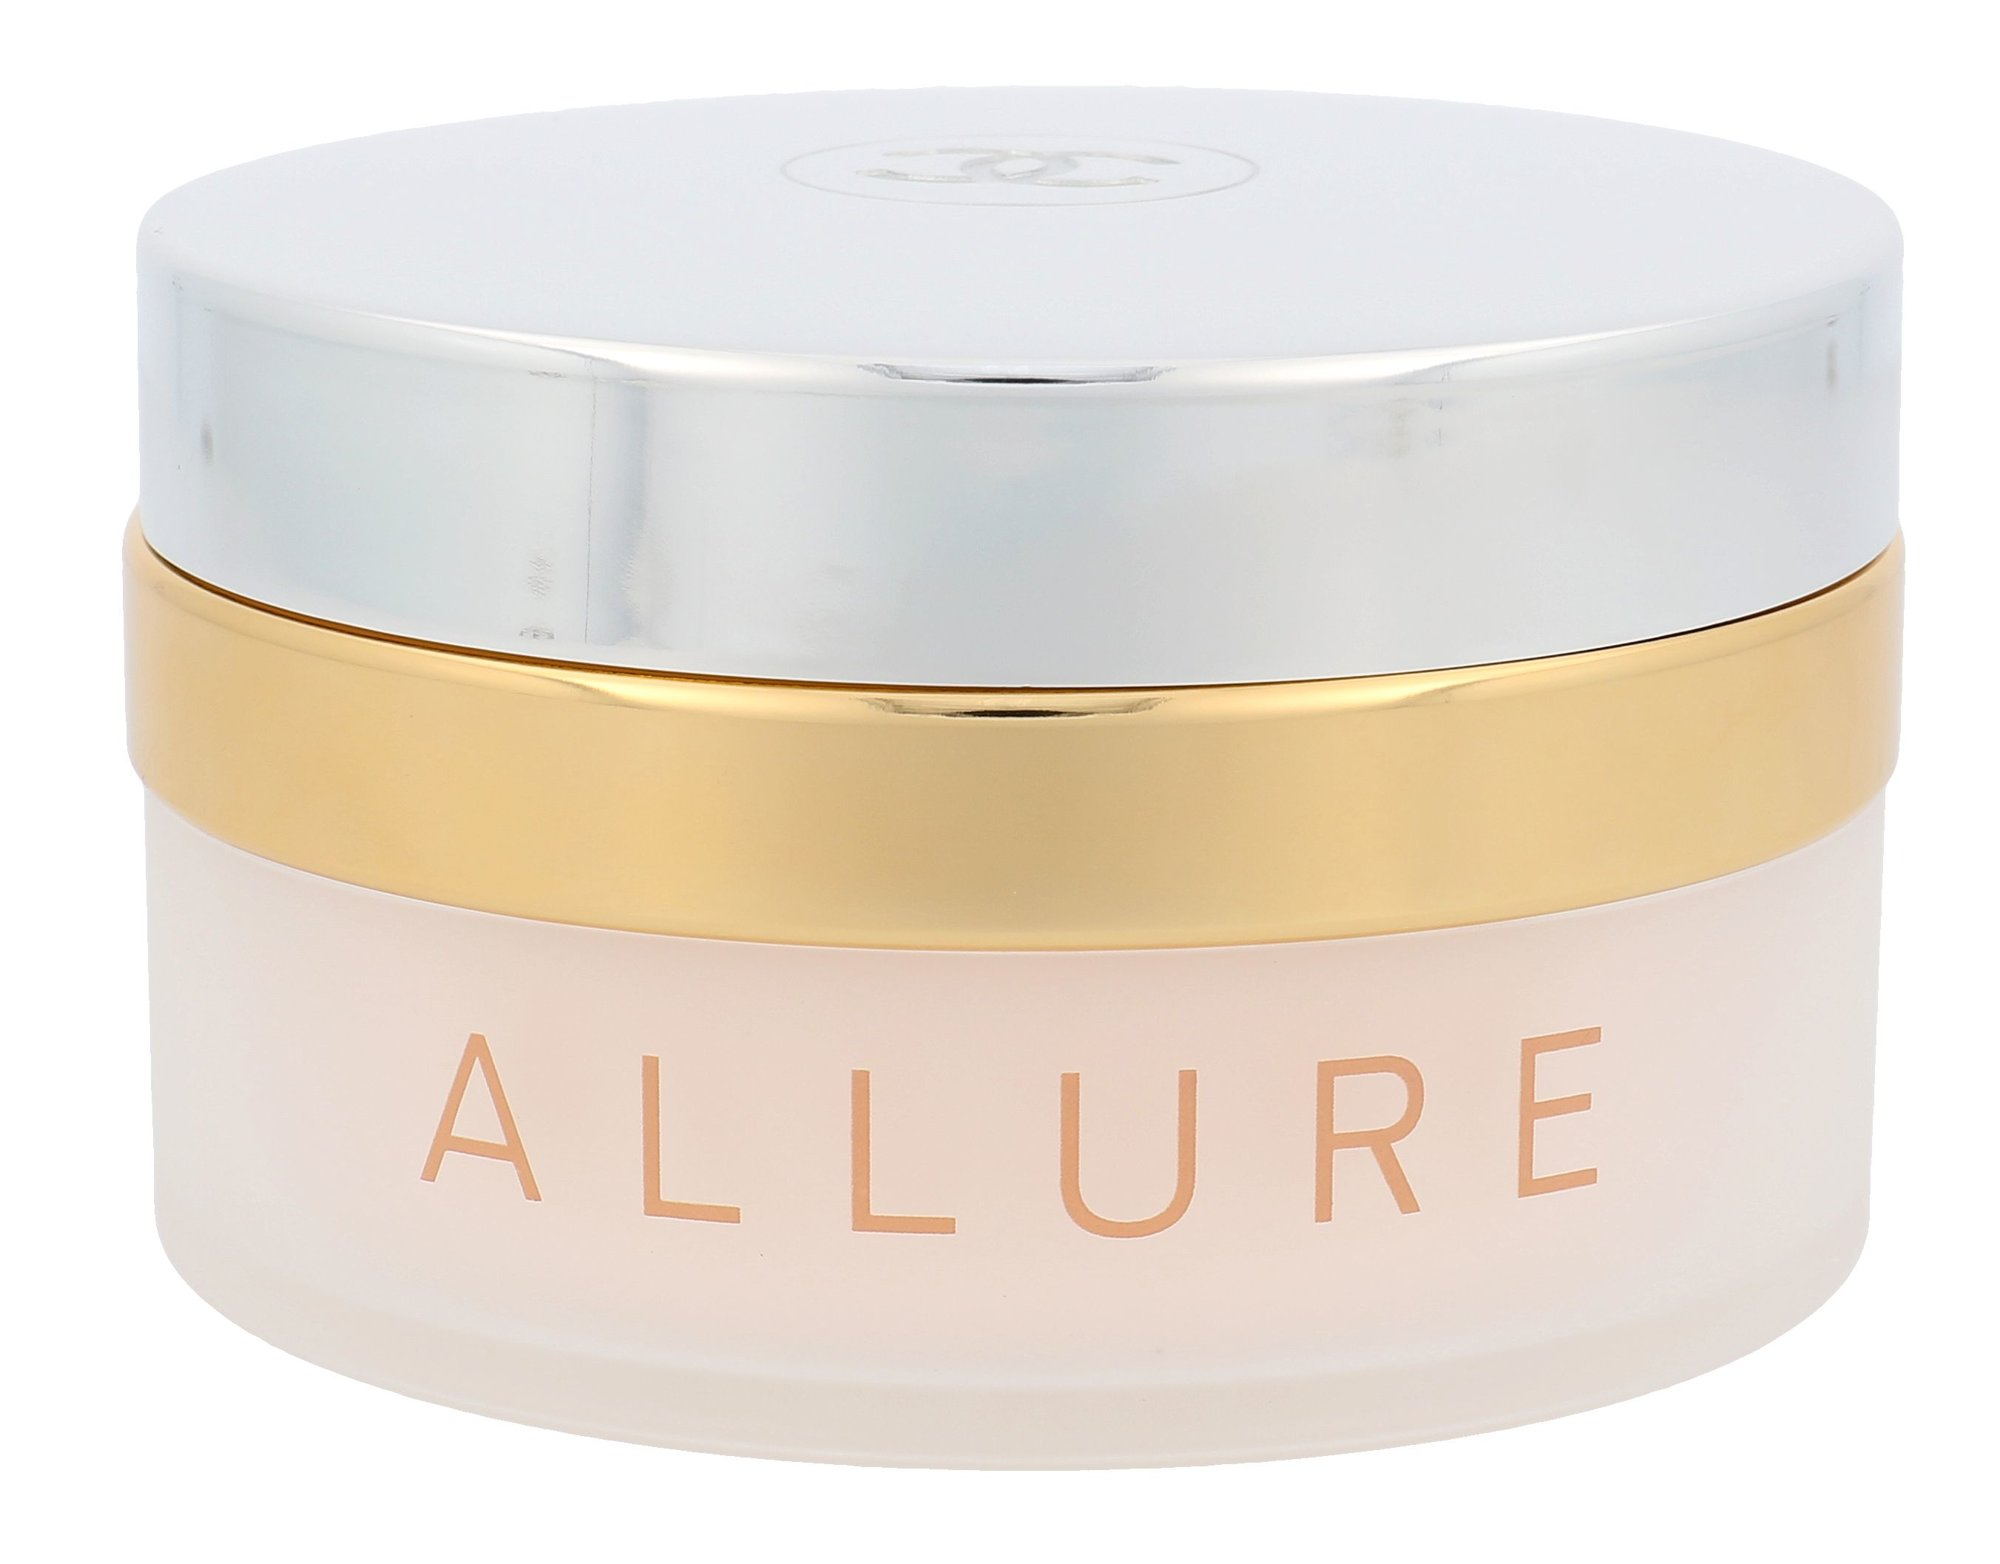 Chanel Allure Body cream 200ml